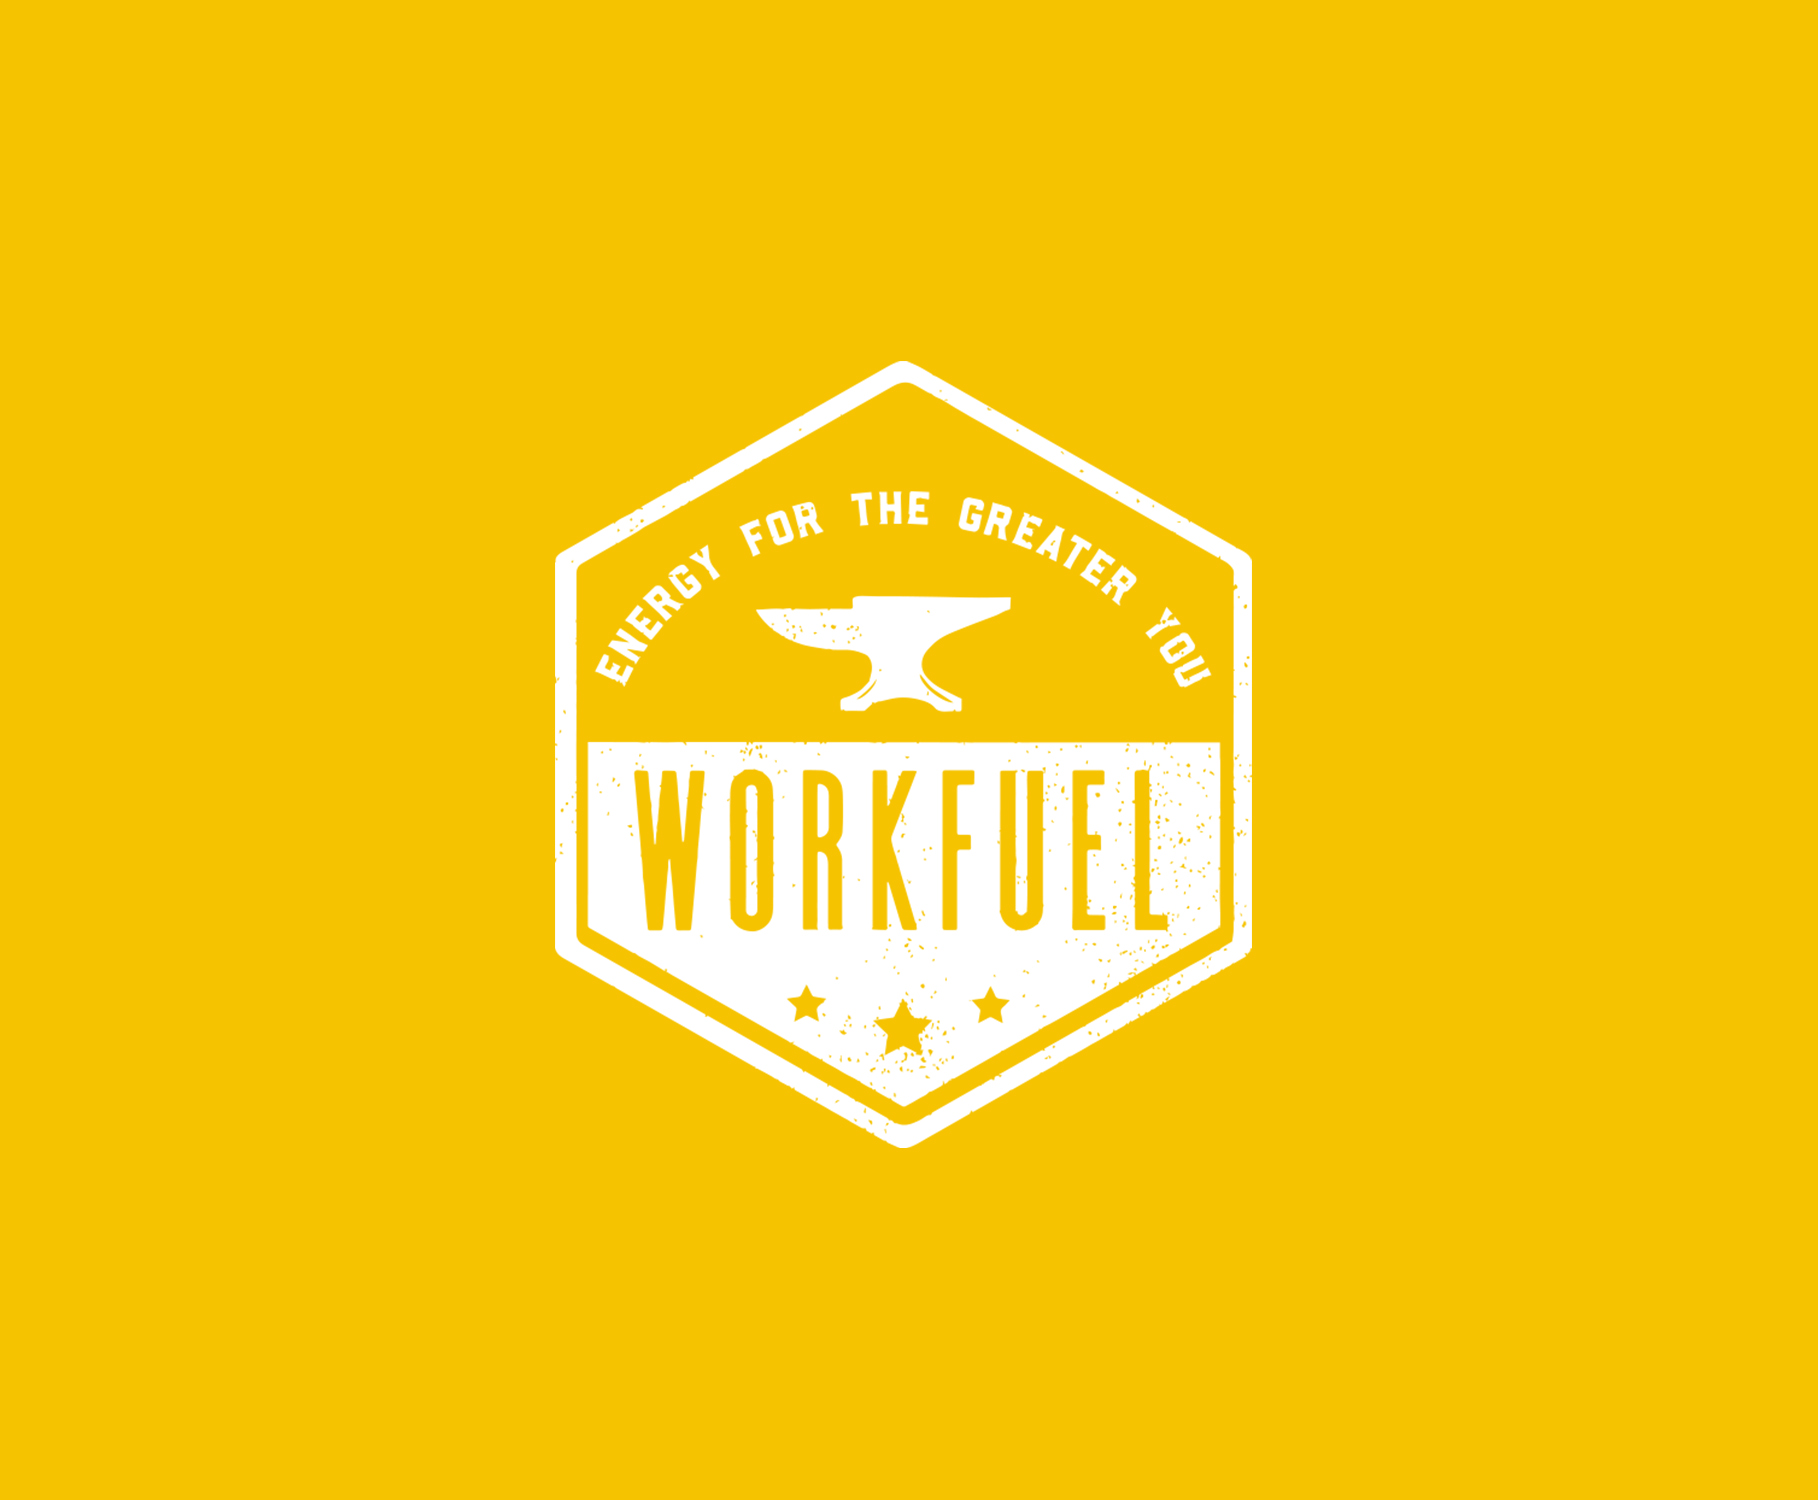 Client: WORKFUEL